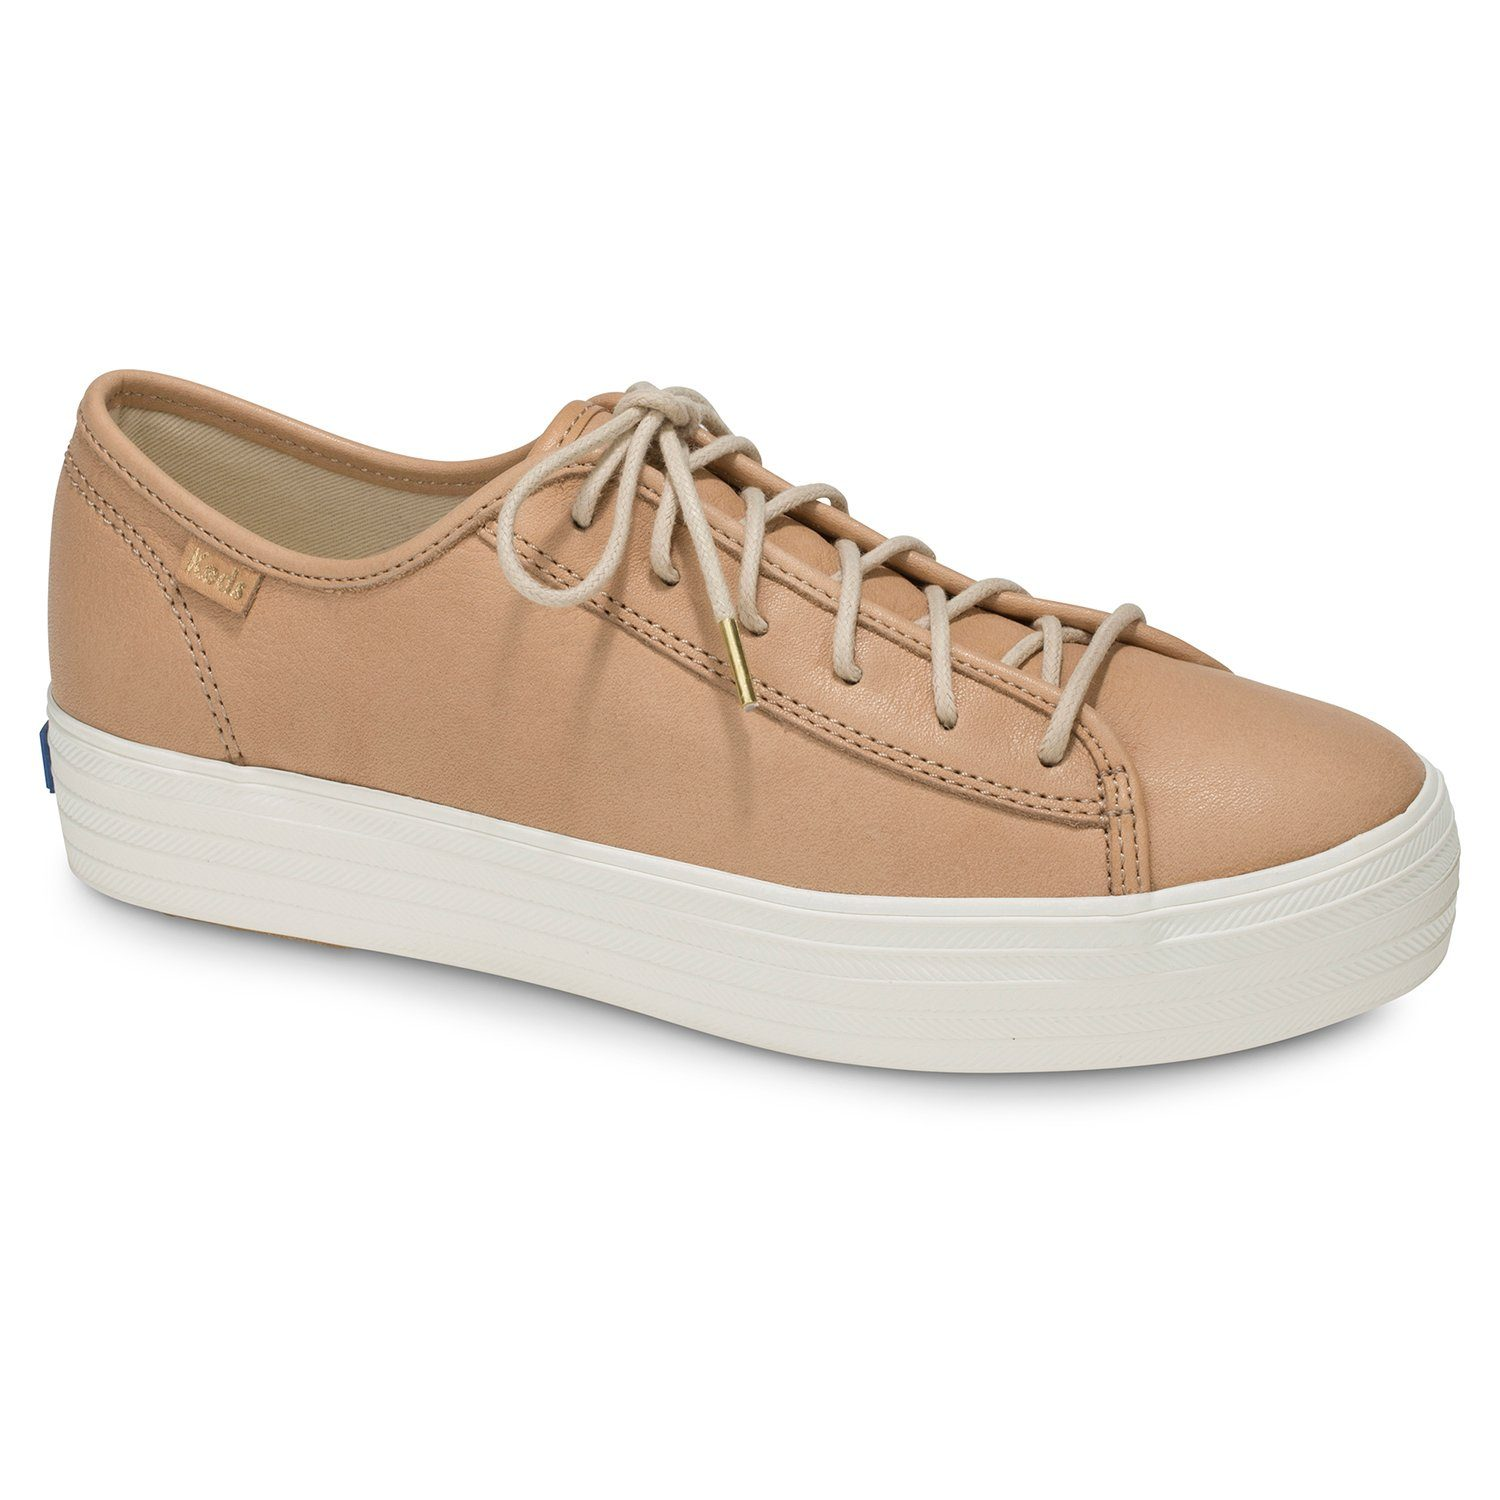 Keds Triple Kick Leather Plateausneaker kaufen  beige